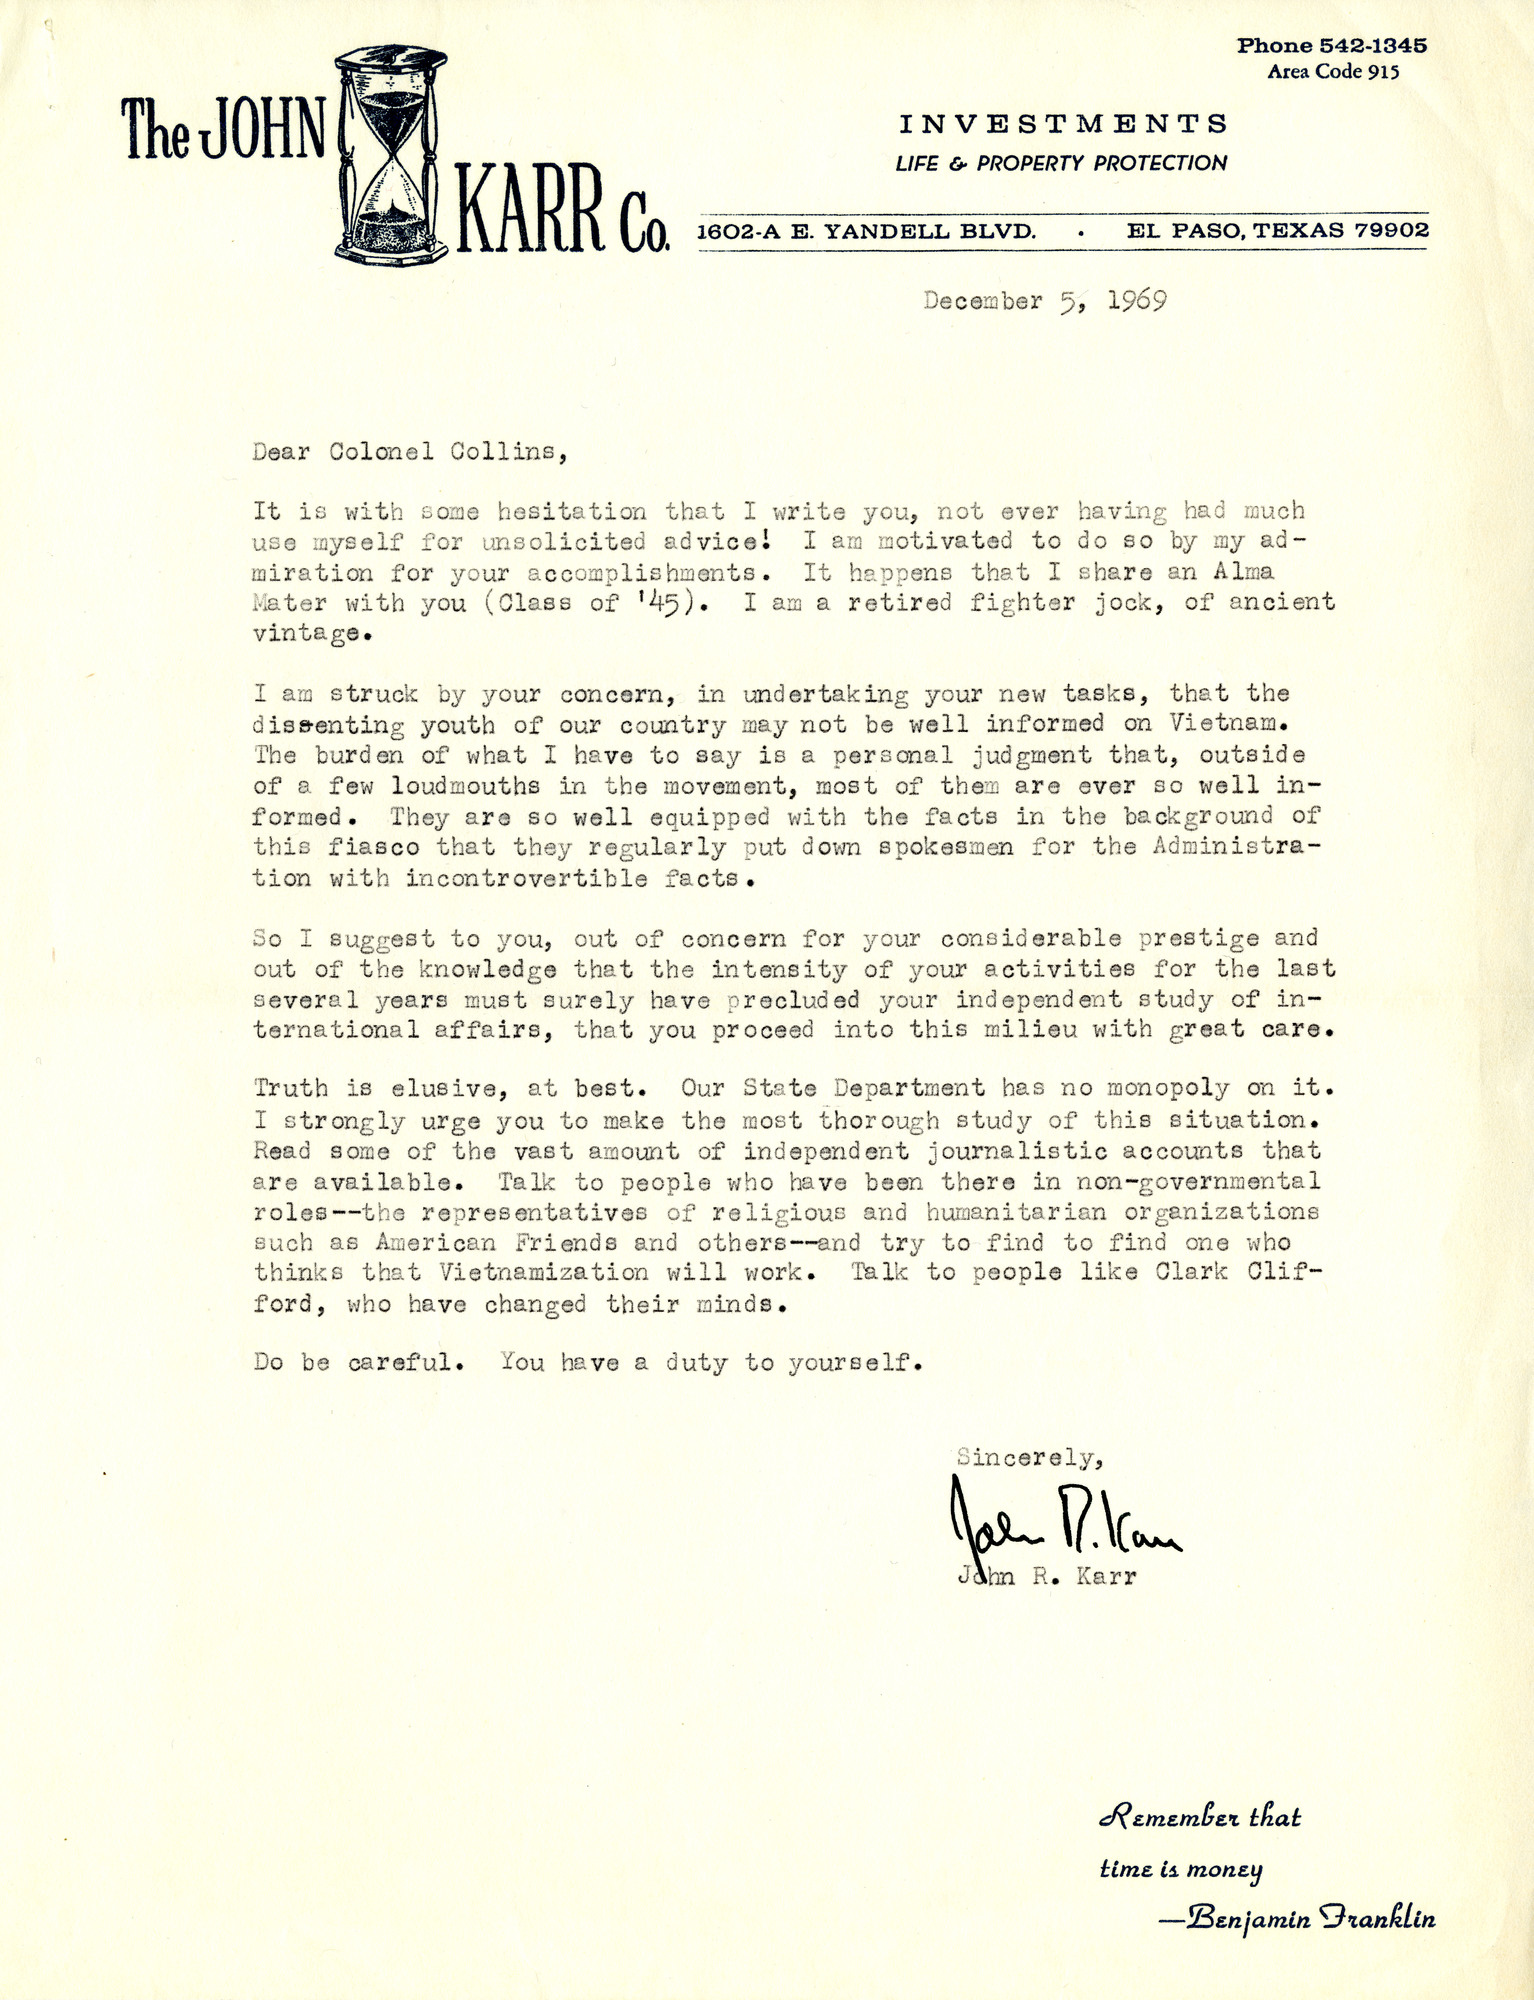 http://spec.lib.vt.edu/pickup/Omeka_upload/Ms1989-029_B18_F1_MichaelCollins_Letter_1969_1205.jpg